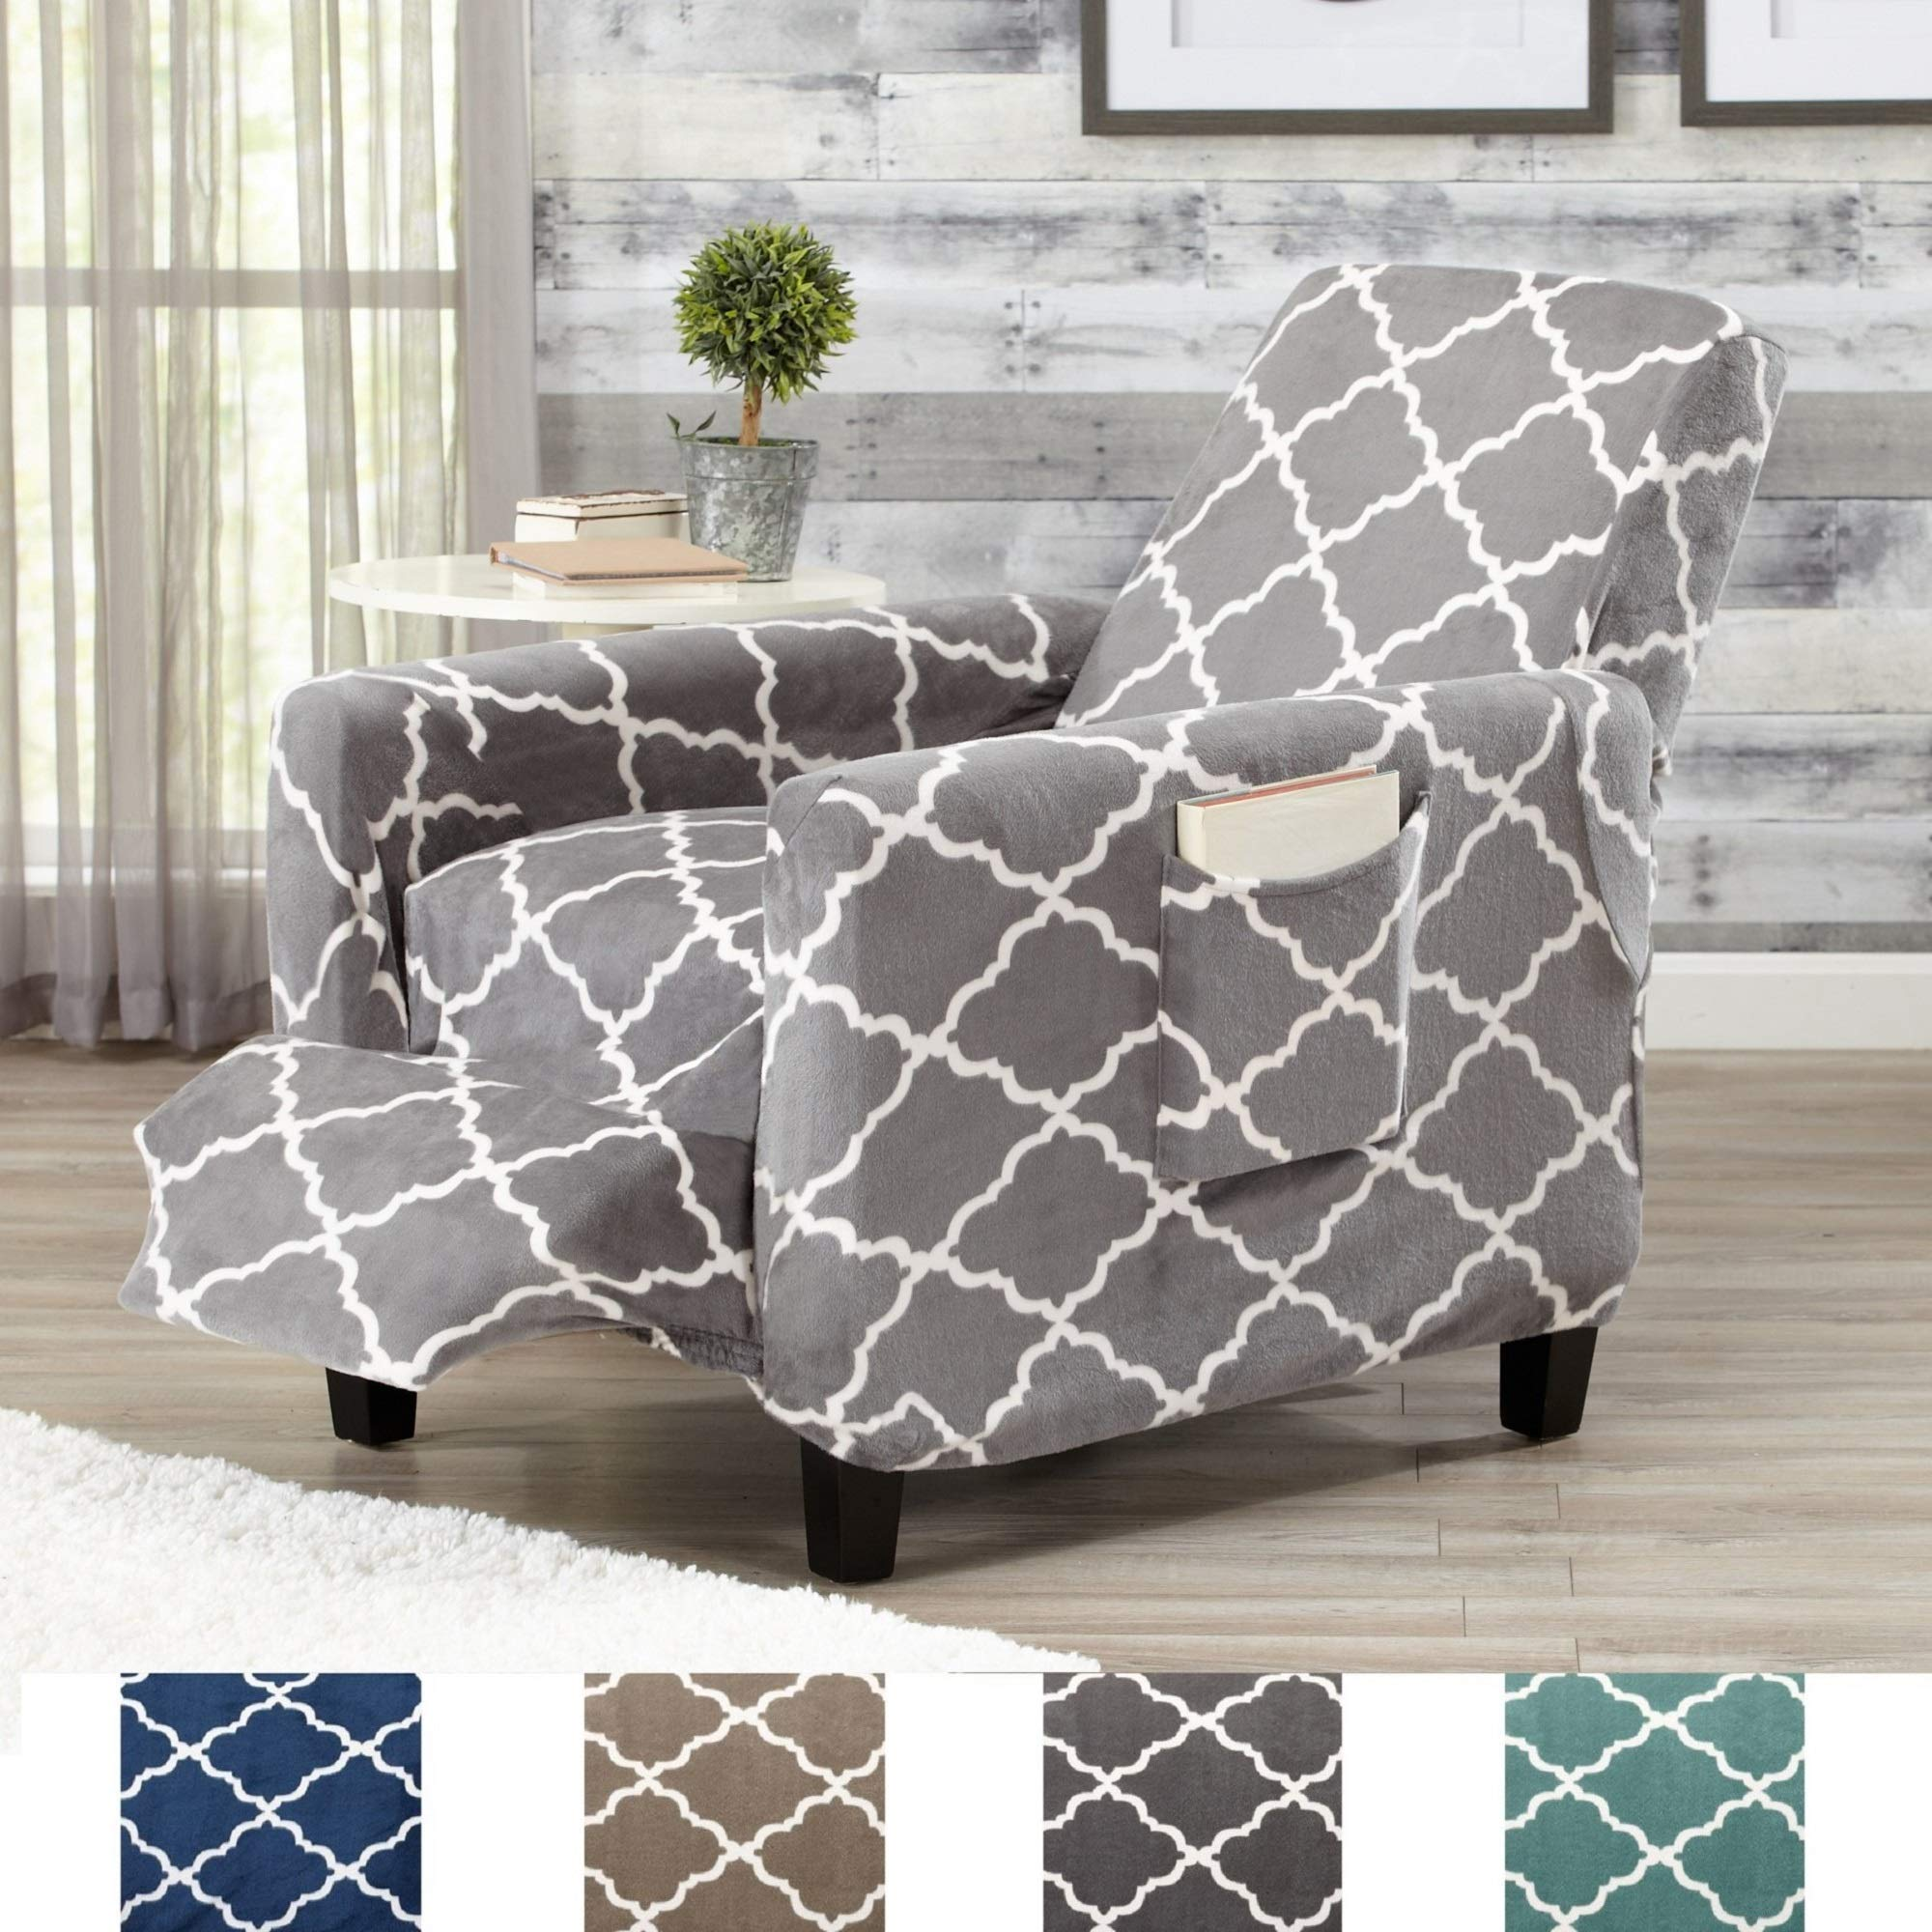 Great Bay Home Modern Velvet Plush Strapless Slipcover. Form Fit Stretch, Stylish Furniture Shield/Protector. Magnolia Collection Strapless Slipcover by Brand. (Recliner, Grey)